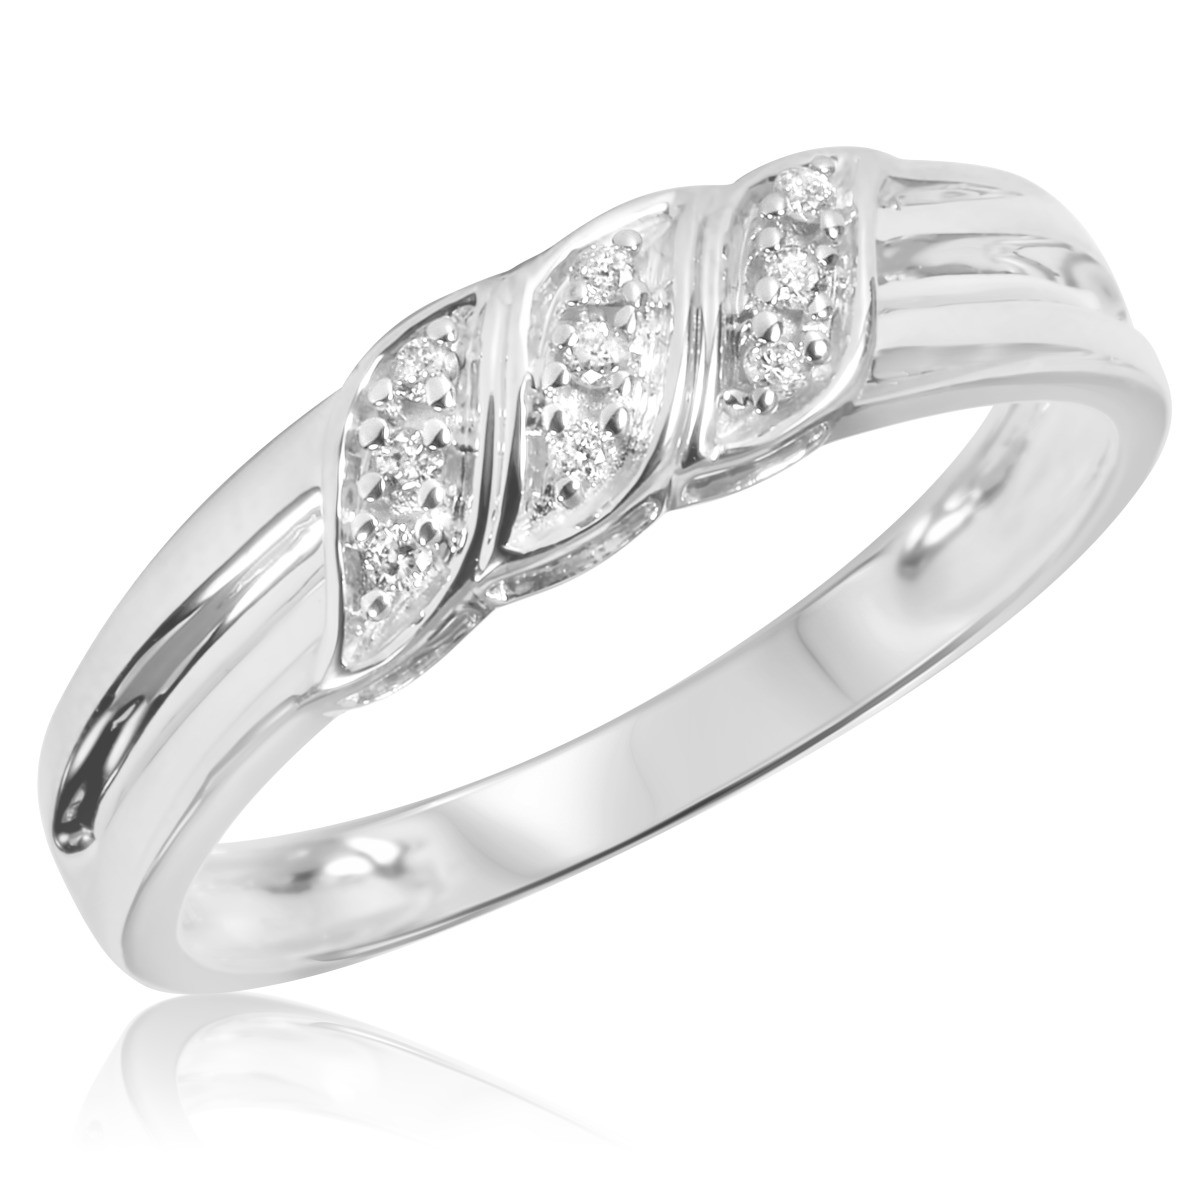 1/10 Carat T.W. Diamond Men's Wedding Ring 14K White Gold